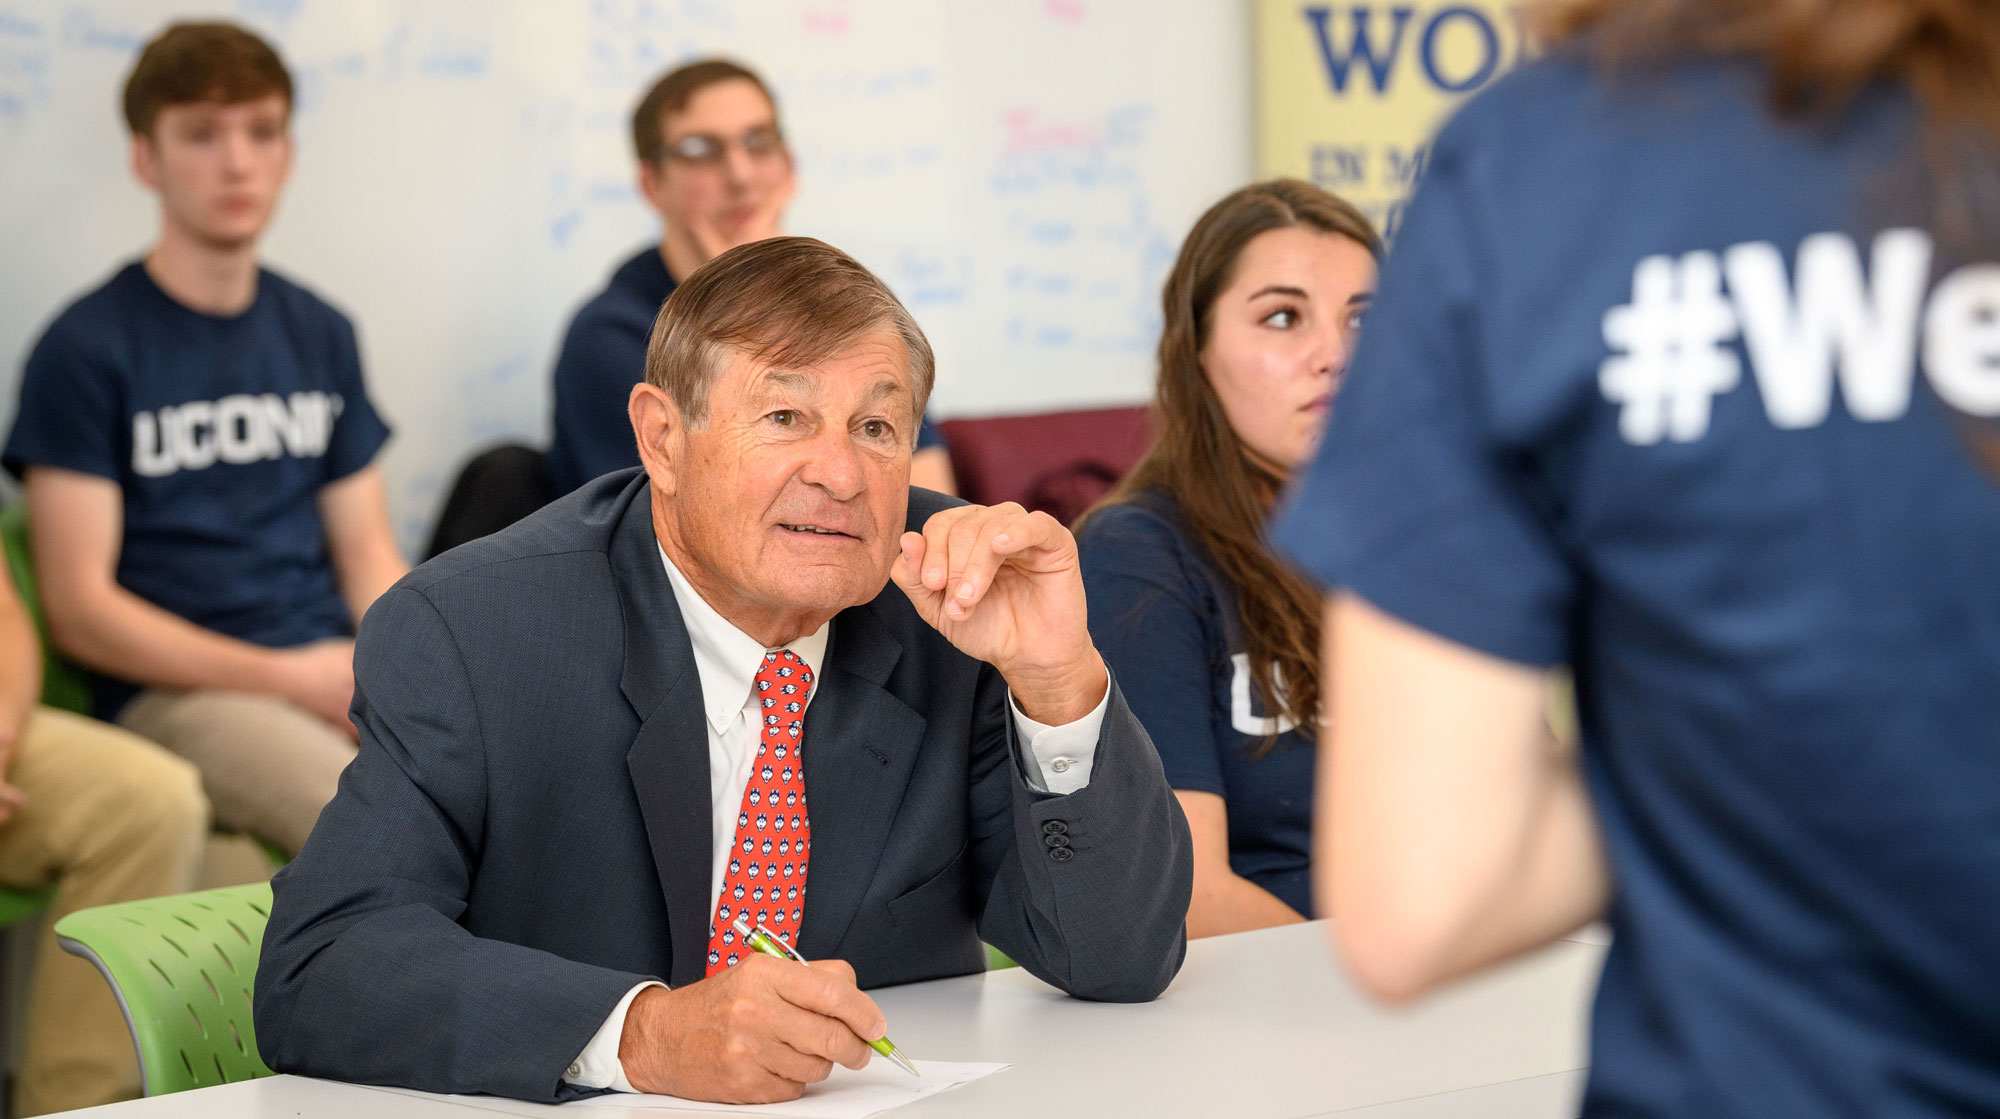 Peter J. Werth listens to student presentations